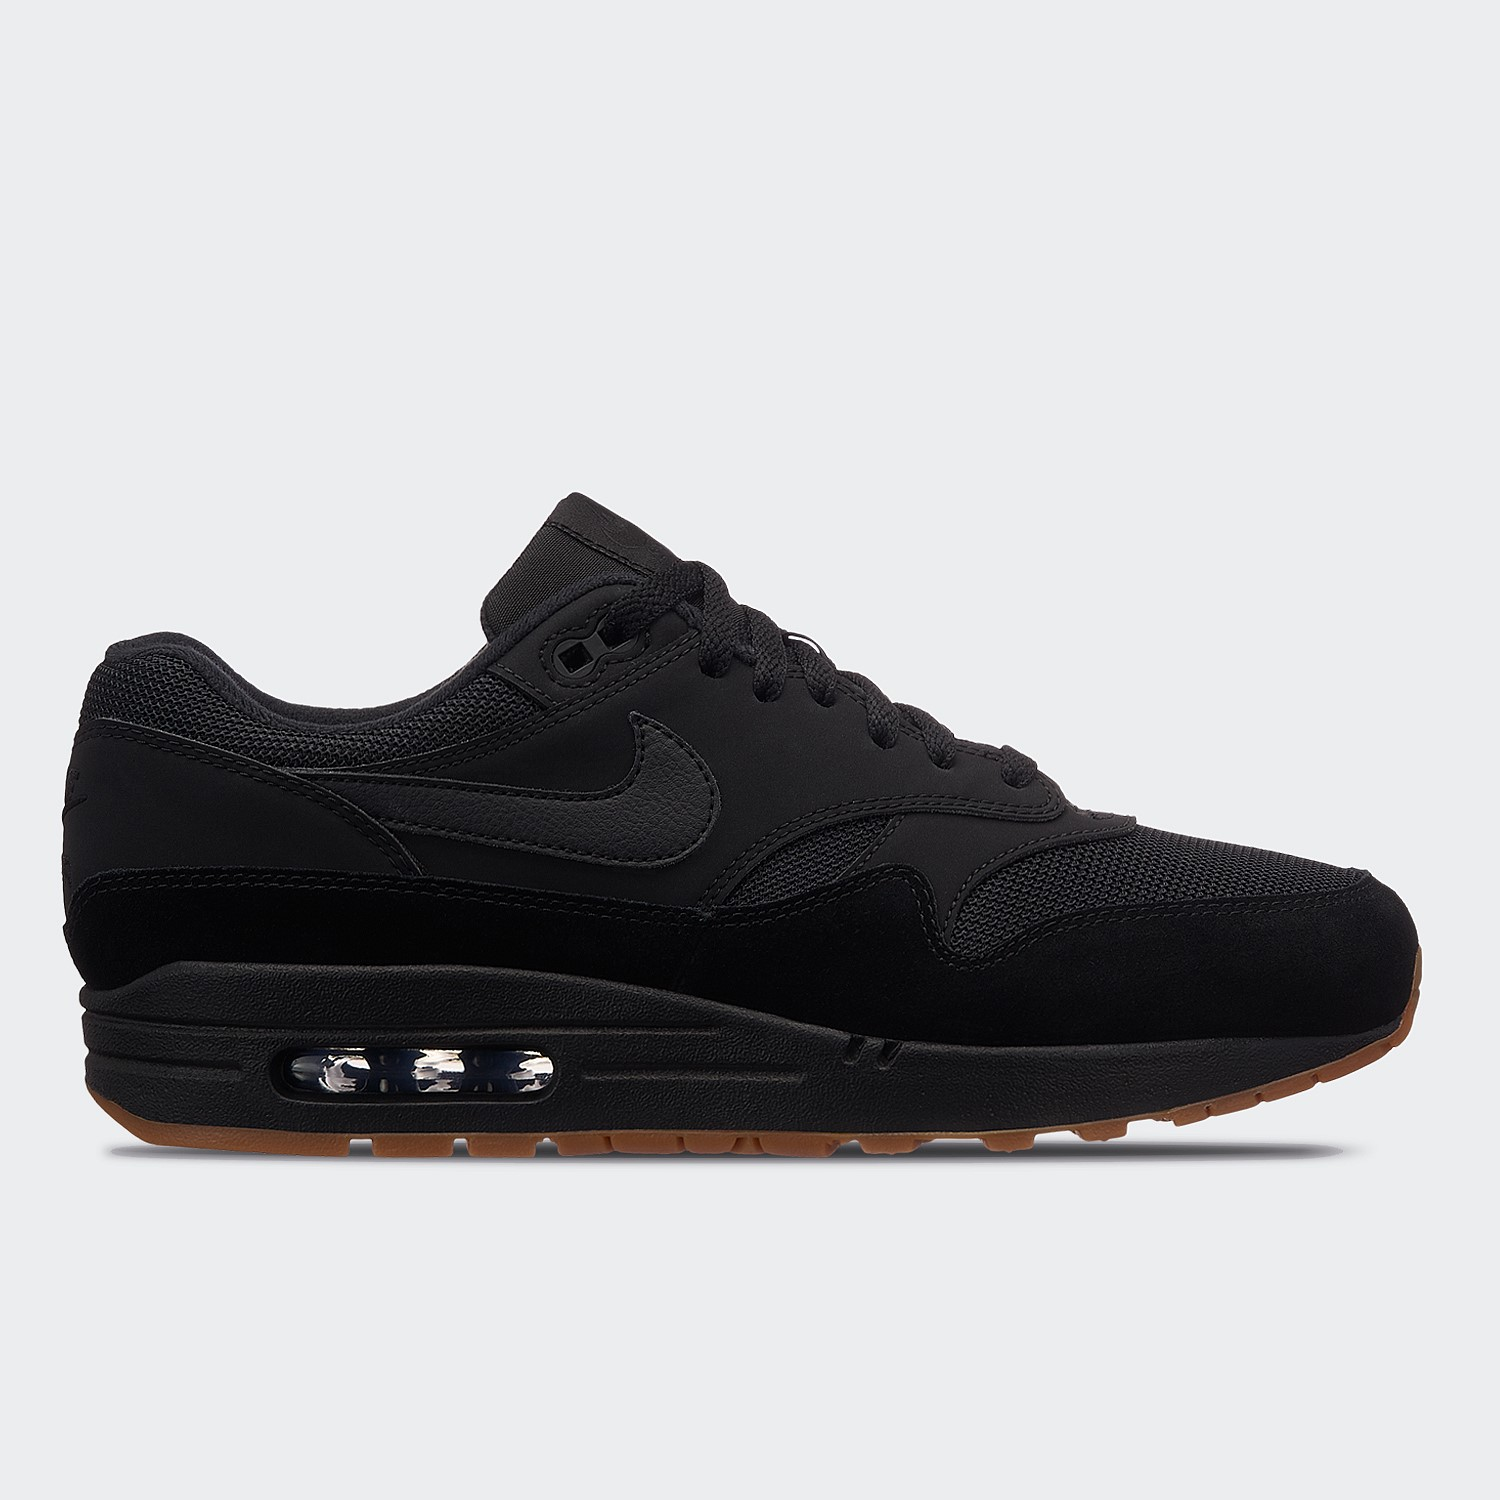 new concept 794cf 523ef Men s Footwear   Men s Lifestyle and Training Shoes Online   Stirling  Sports - Air Max 1 Mens